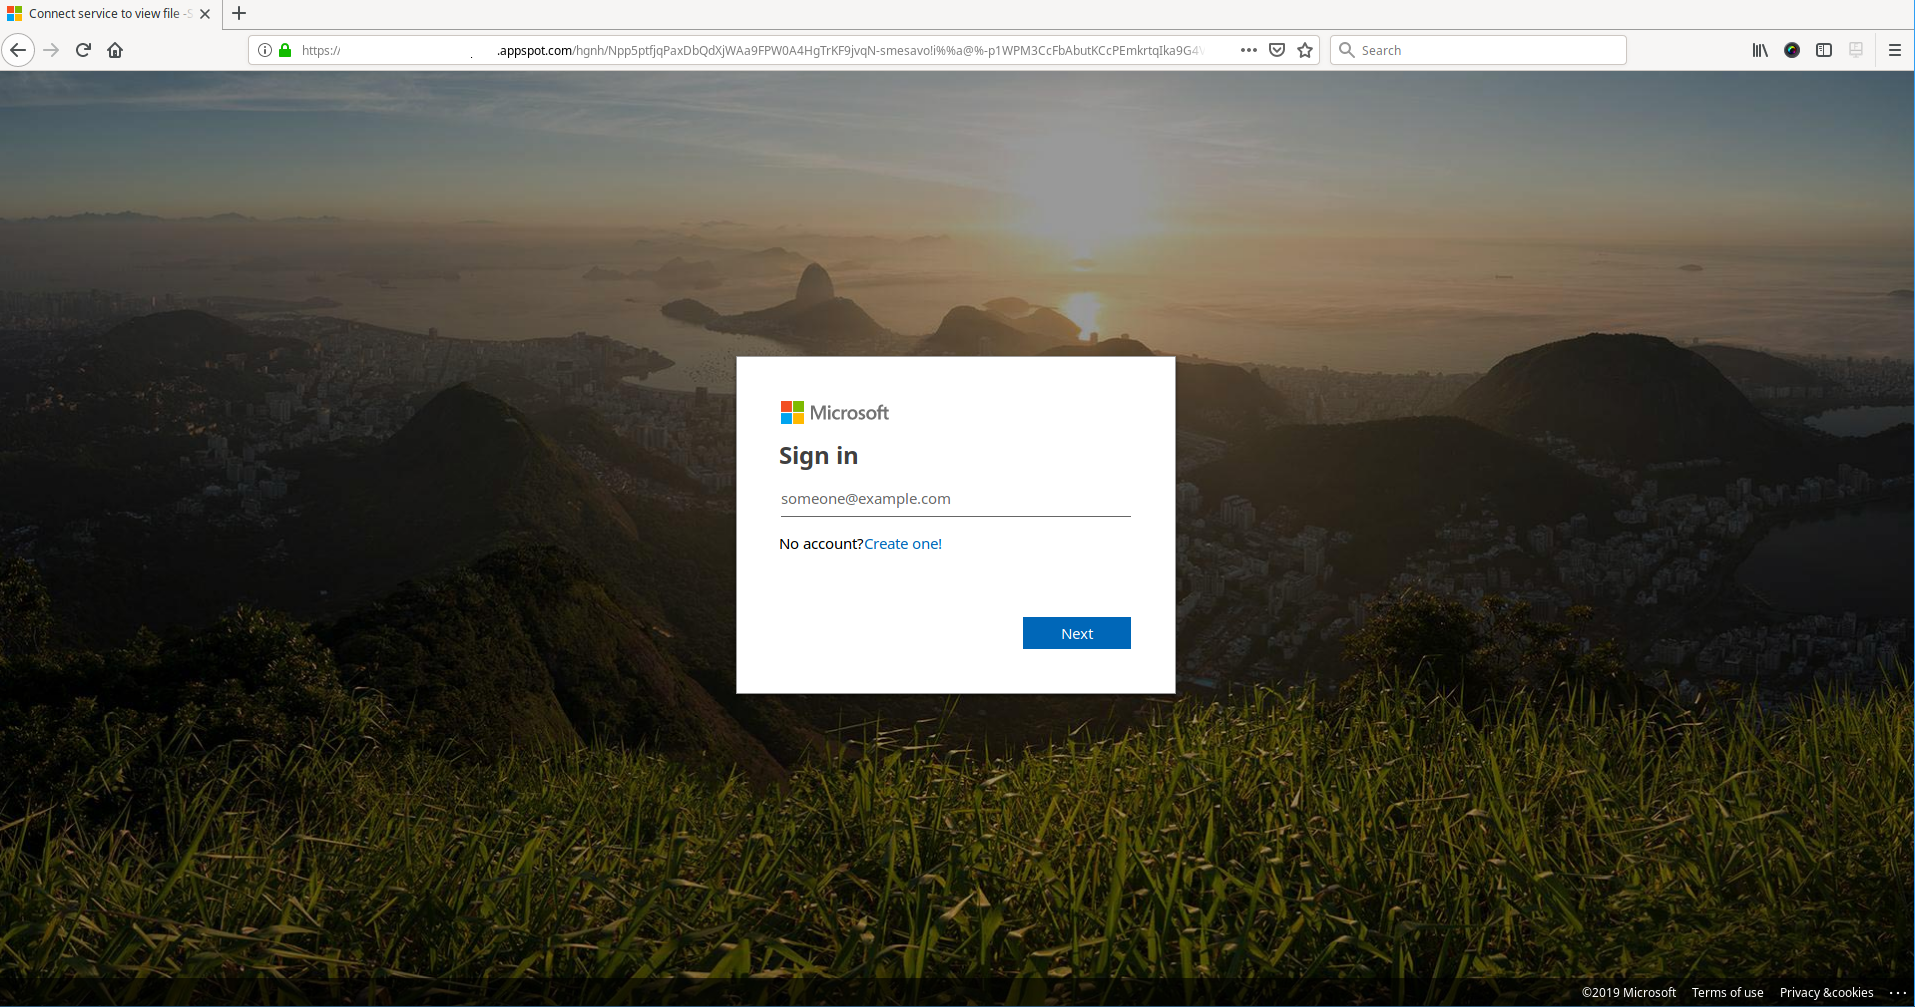 Fake Microsoft login page with a .appSpot.com url